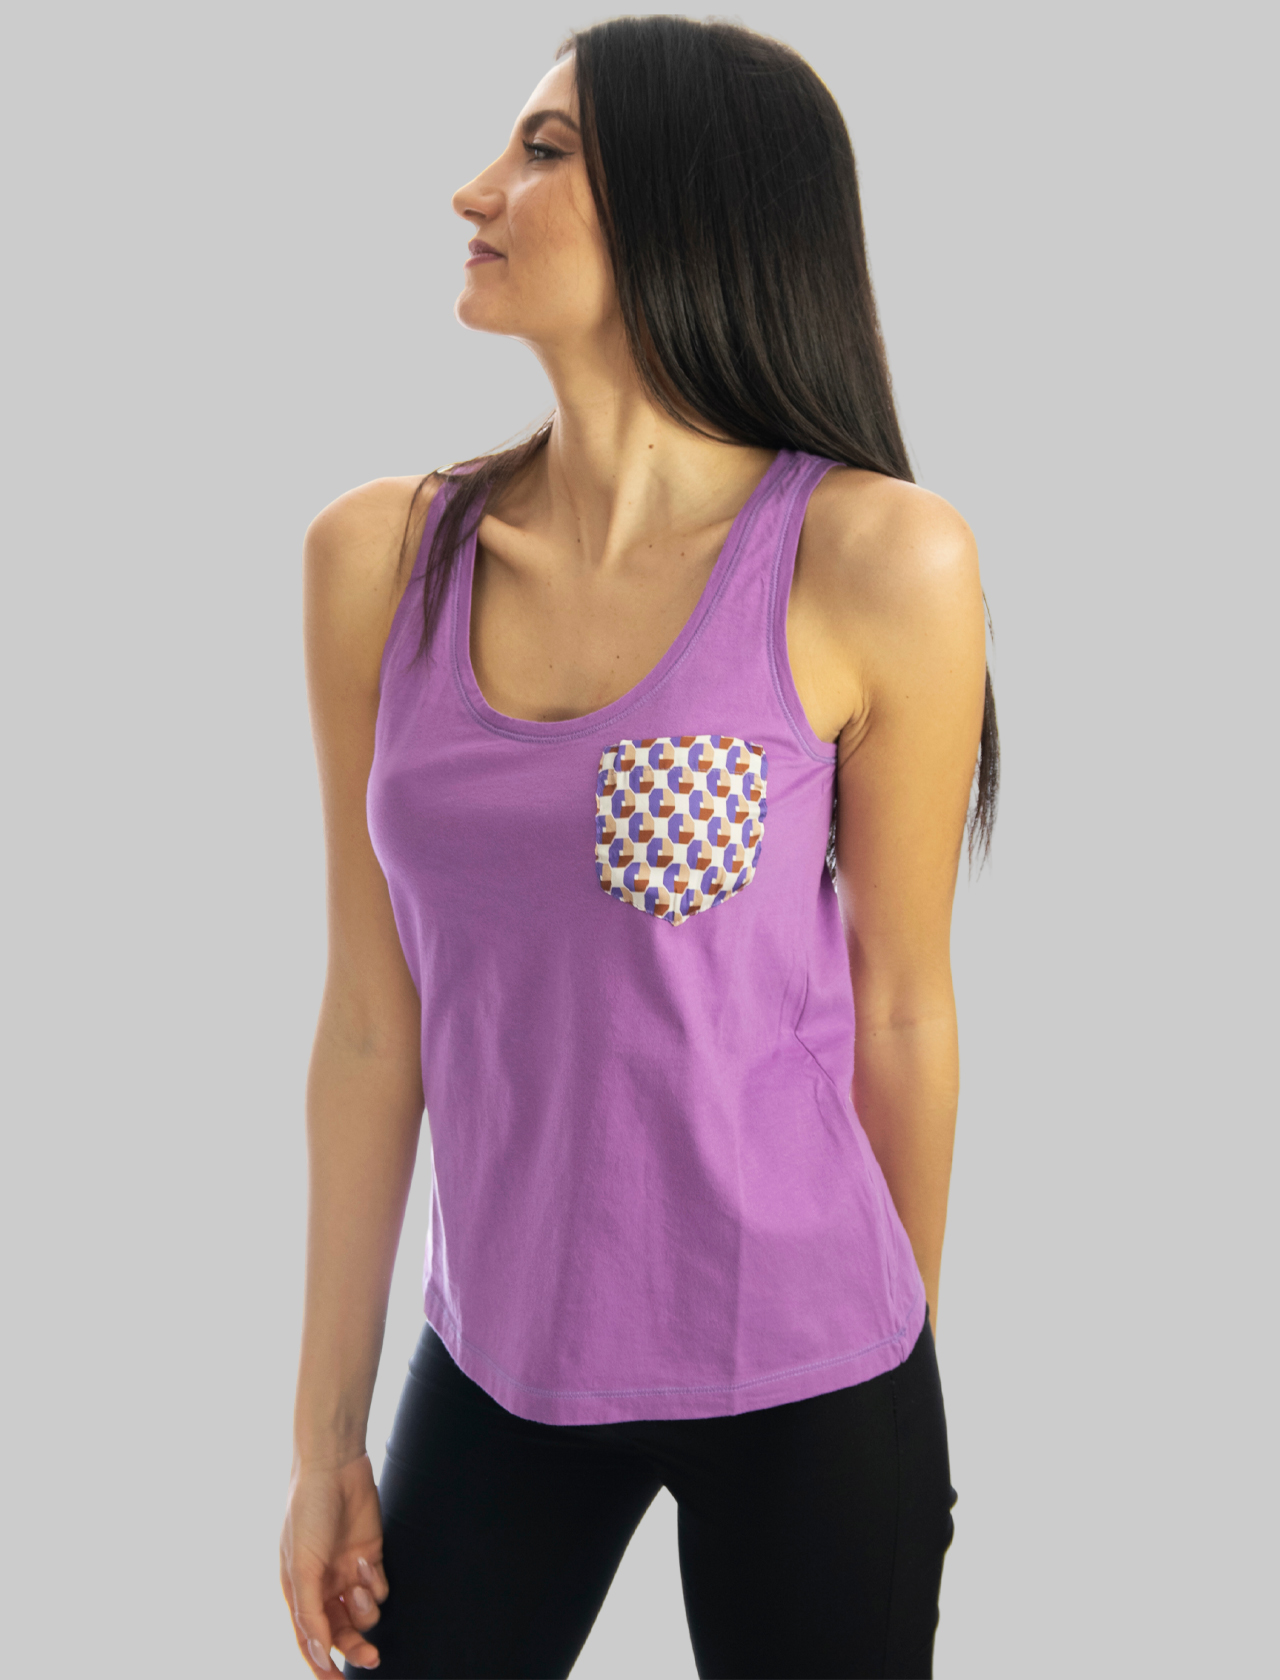 Women's Clothing Wisteria Cotton Patch Tank Top with Patterned Twill Pocket Maliparmi |  | JP54027049551036